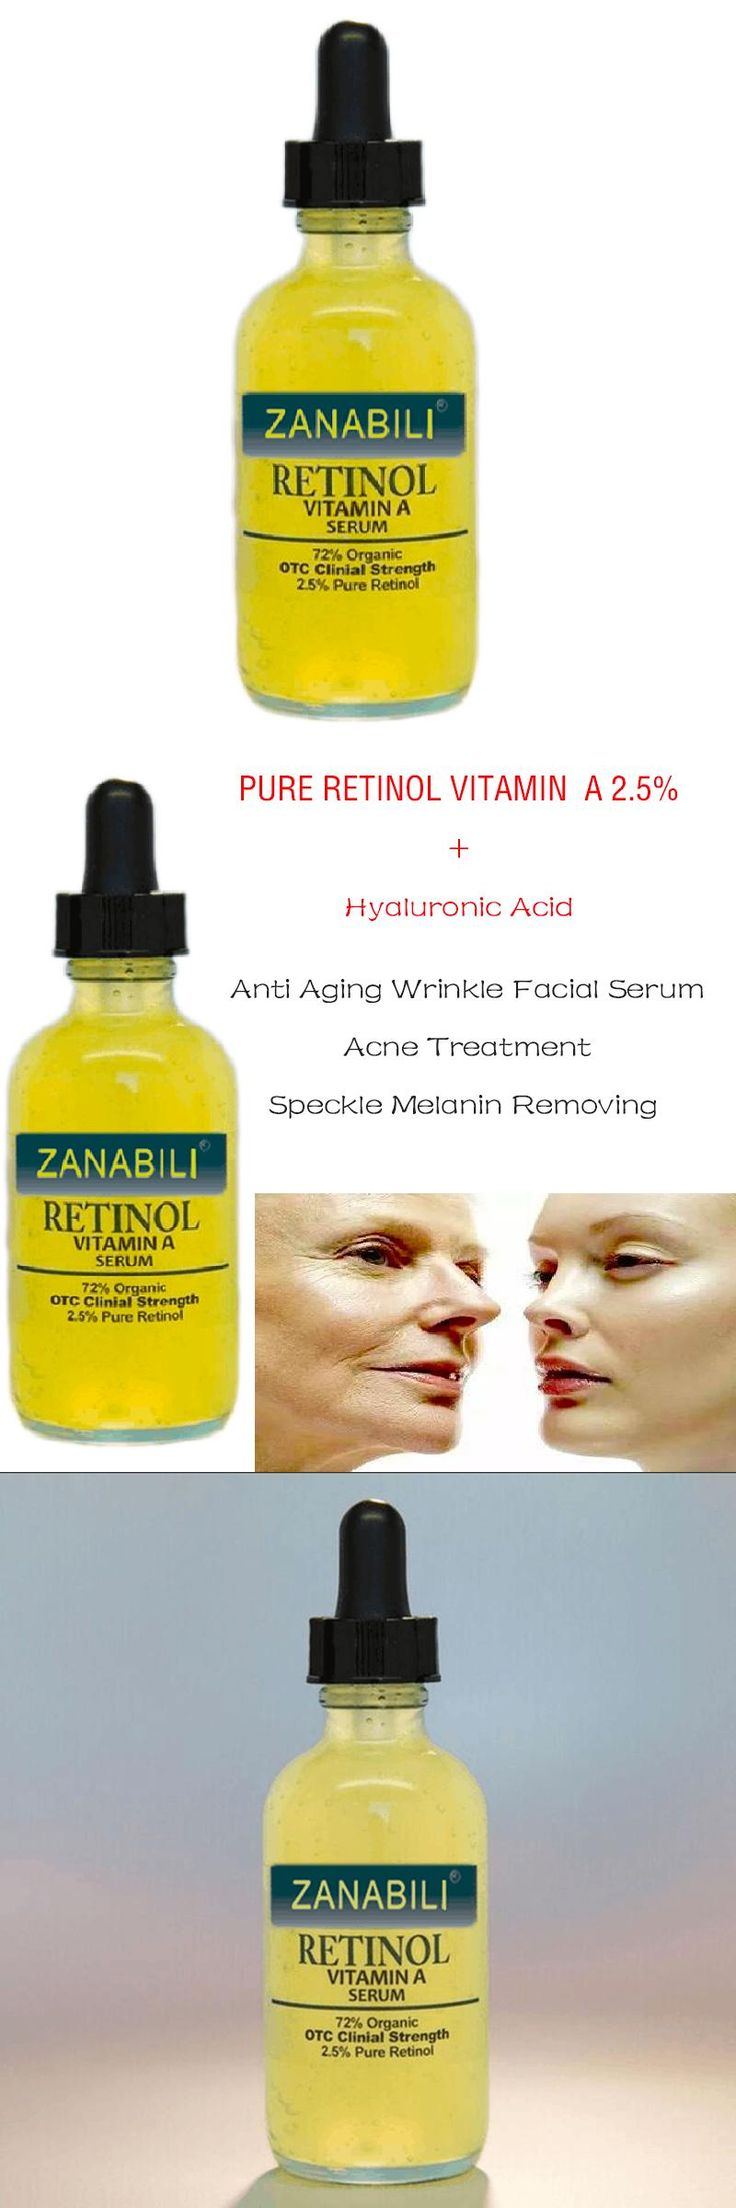 [Visit to Buy] ZANABILI PURE RETINOL VITAMIN A 2.5% + Hyaluronic Acid Acne Scar Removal Spots Facial Serum Anti Wrinkle Whitening Face Cream  #Advertisement